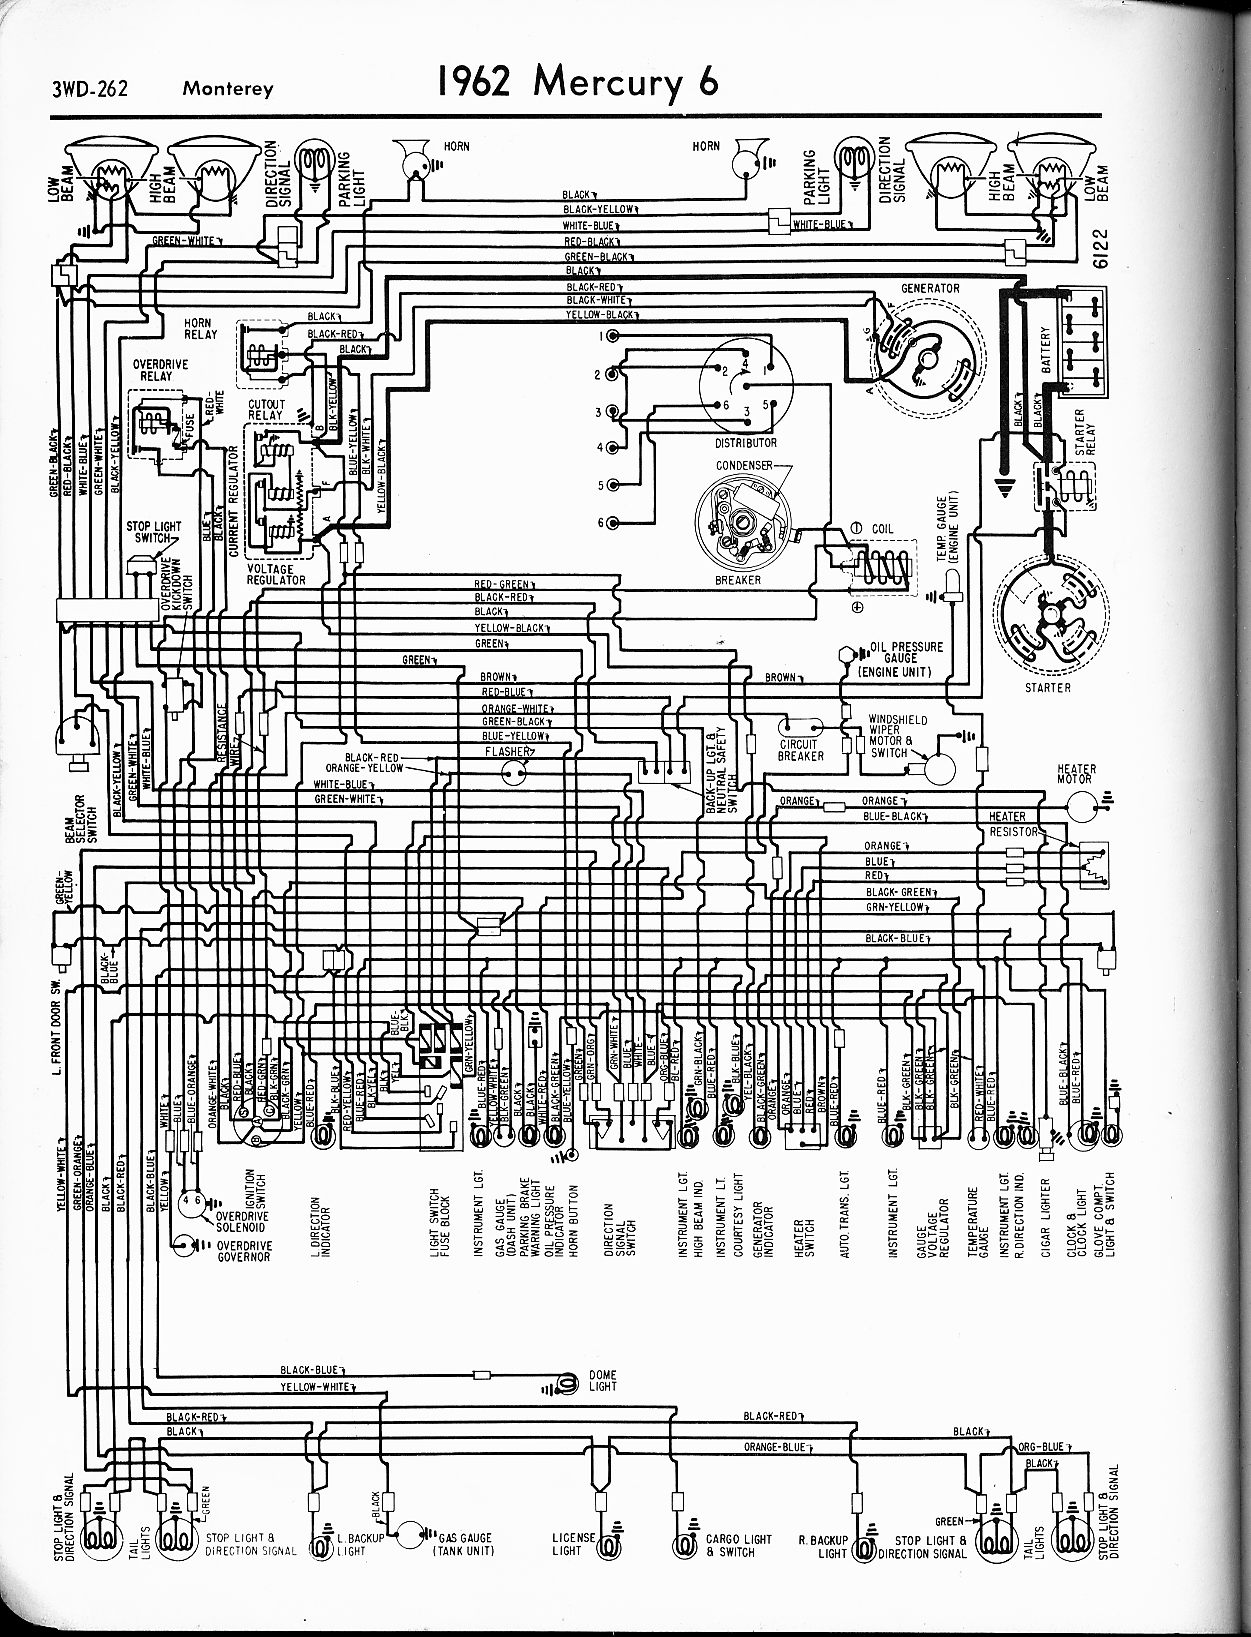 62 corvette wiring diagram for sale trusted wiring diagram u2022 rh soulmatestyle co 1985 mercury 115 wiring diagram 1985 mercury 50 hp outboard wiring diagram